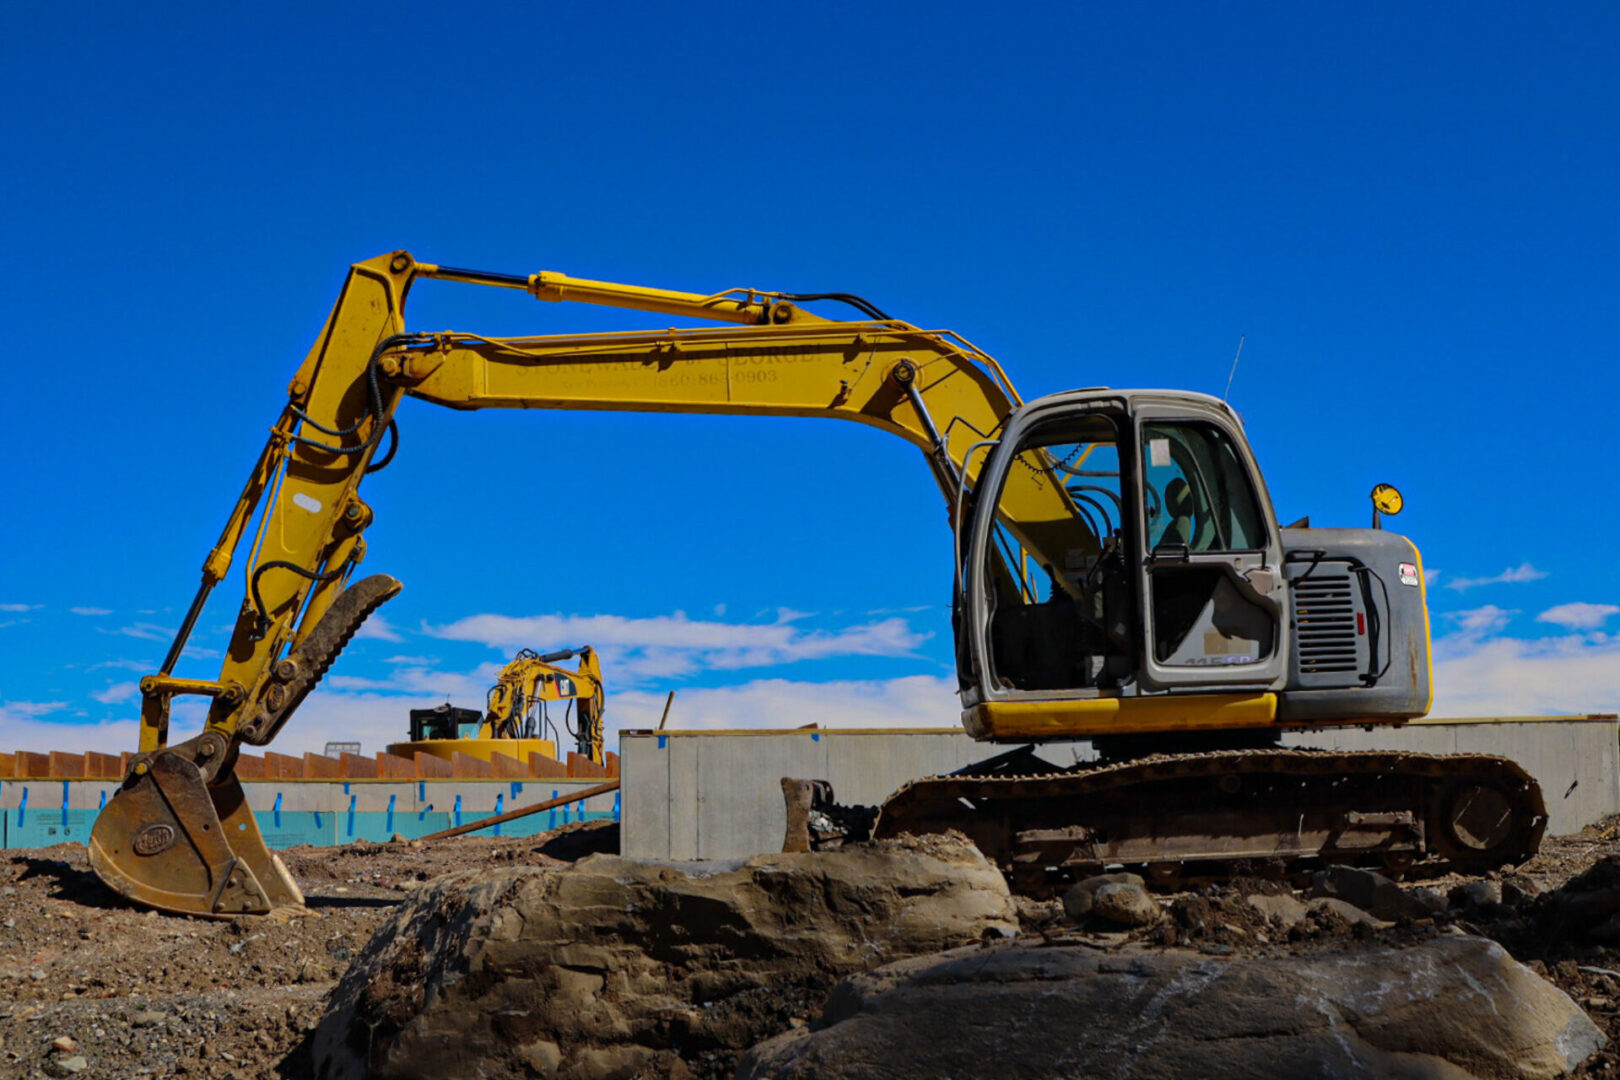 Crane and Construction Vehicle Rentals and Services